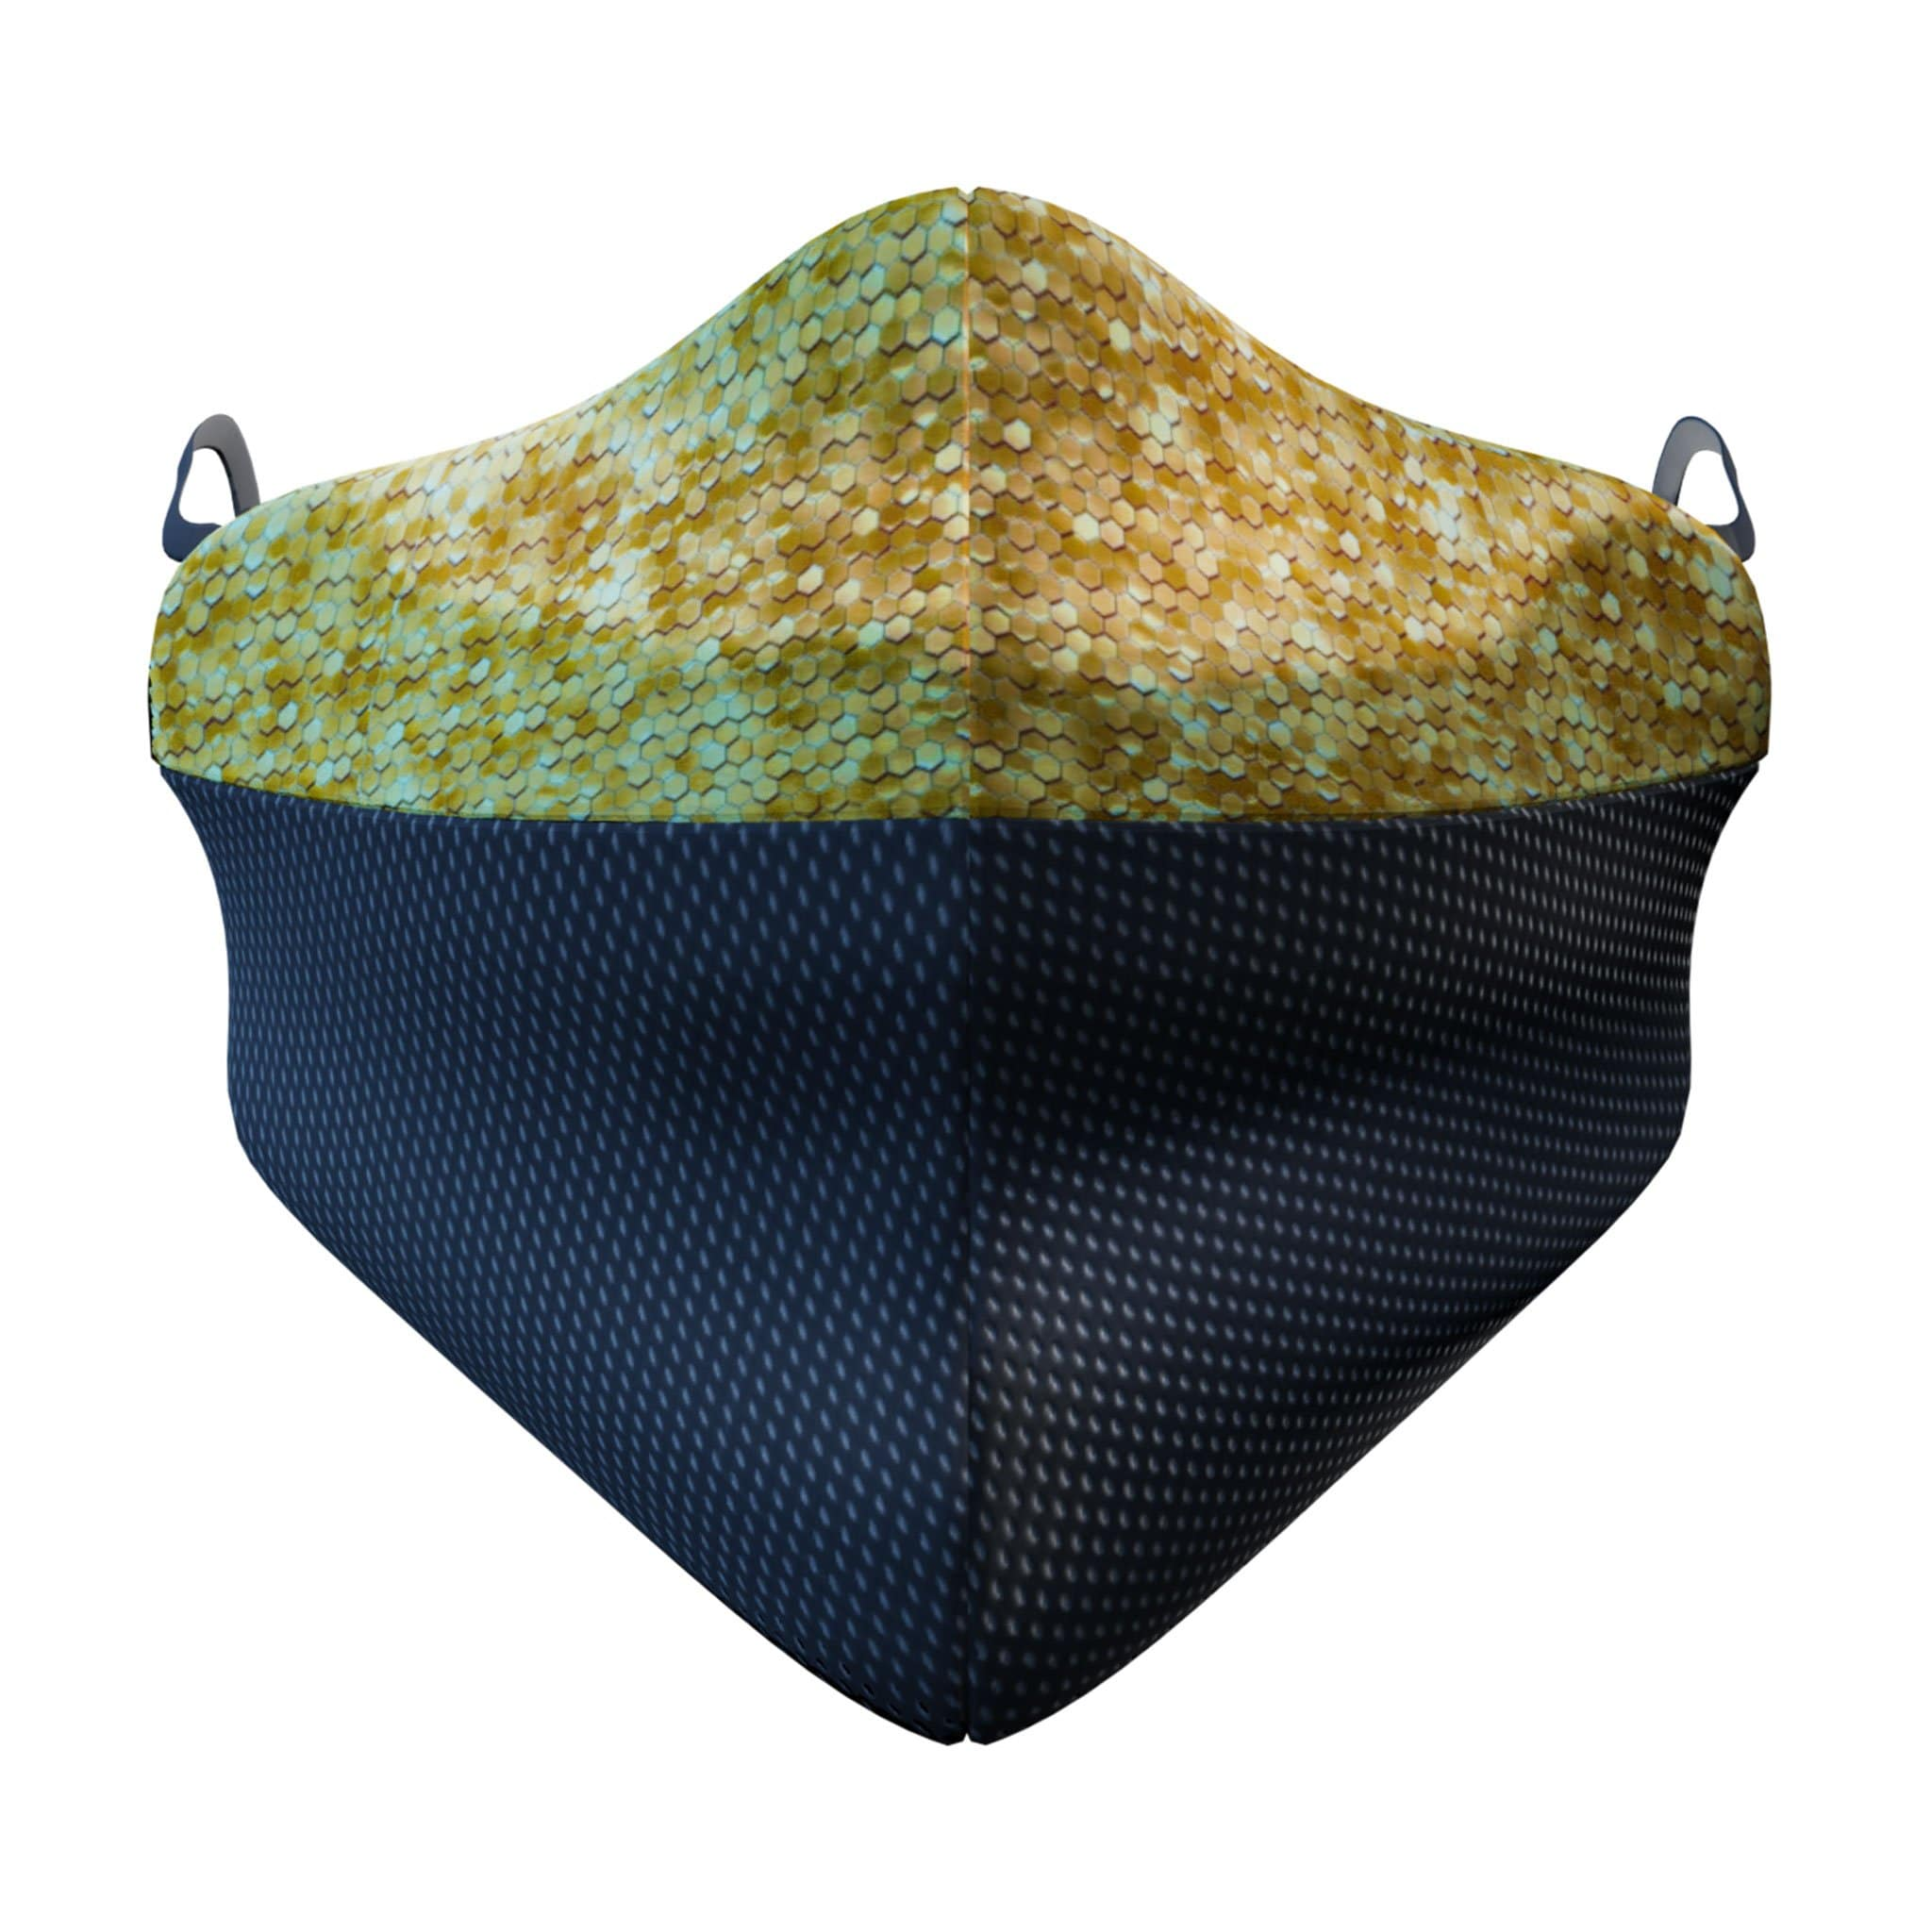 MisfitMask - the facemask that wont steam up your glasses., Protective Masks - Image 37